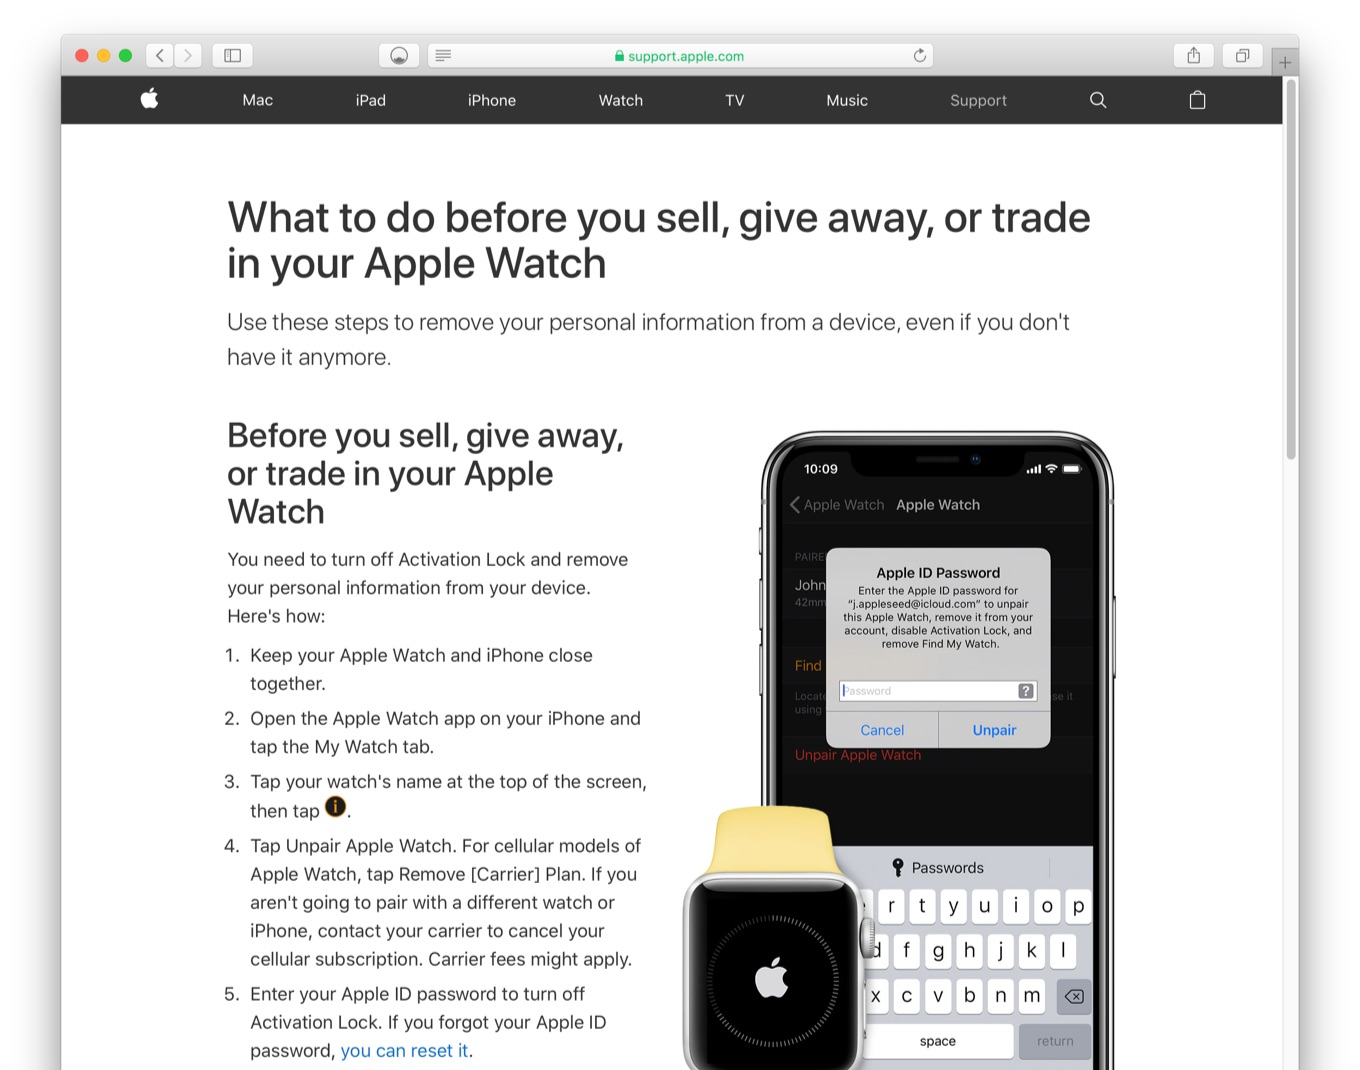 What to do before you sell, give away, or trade in your Apple Watch